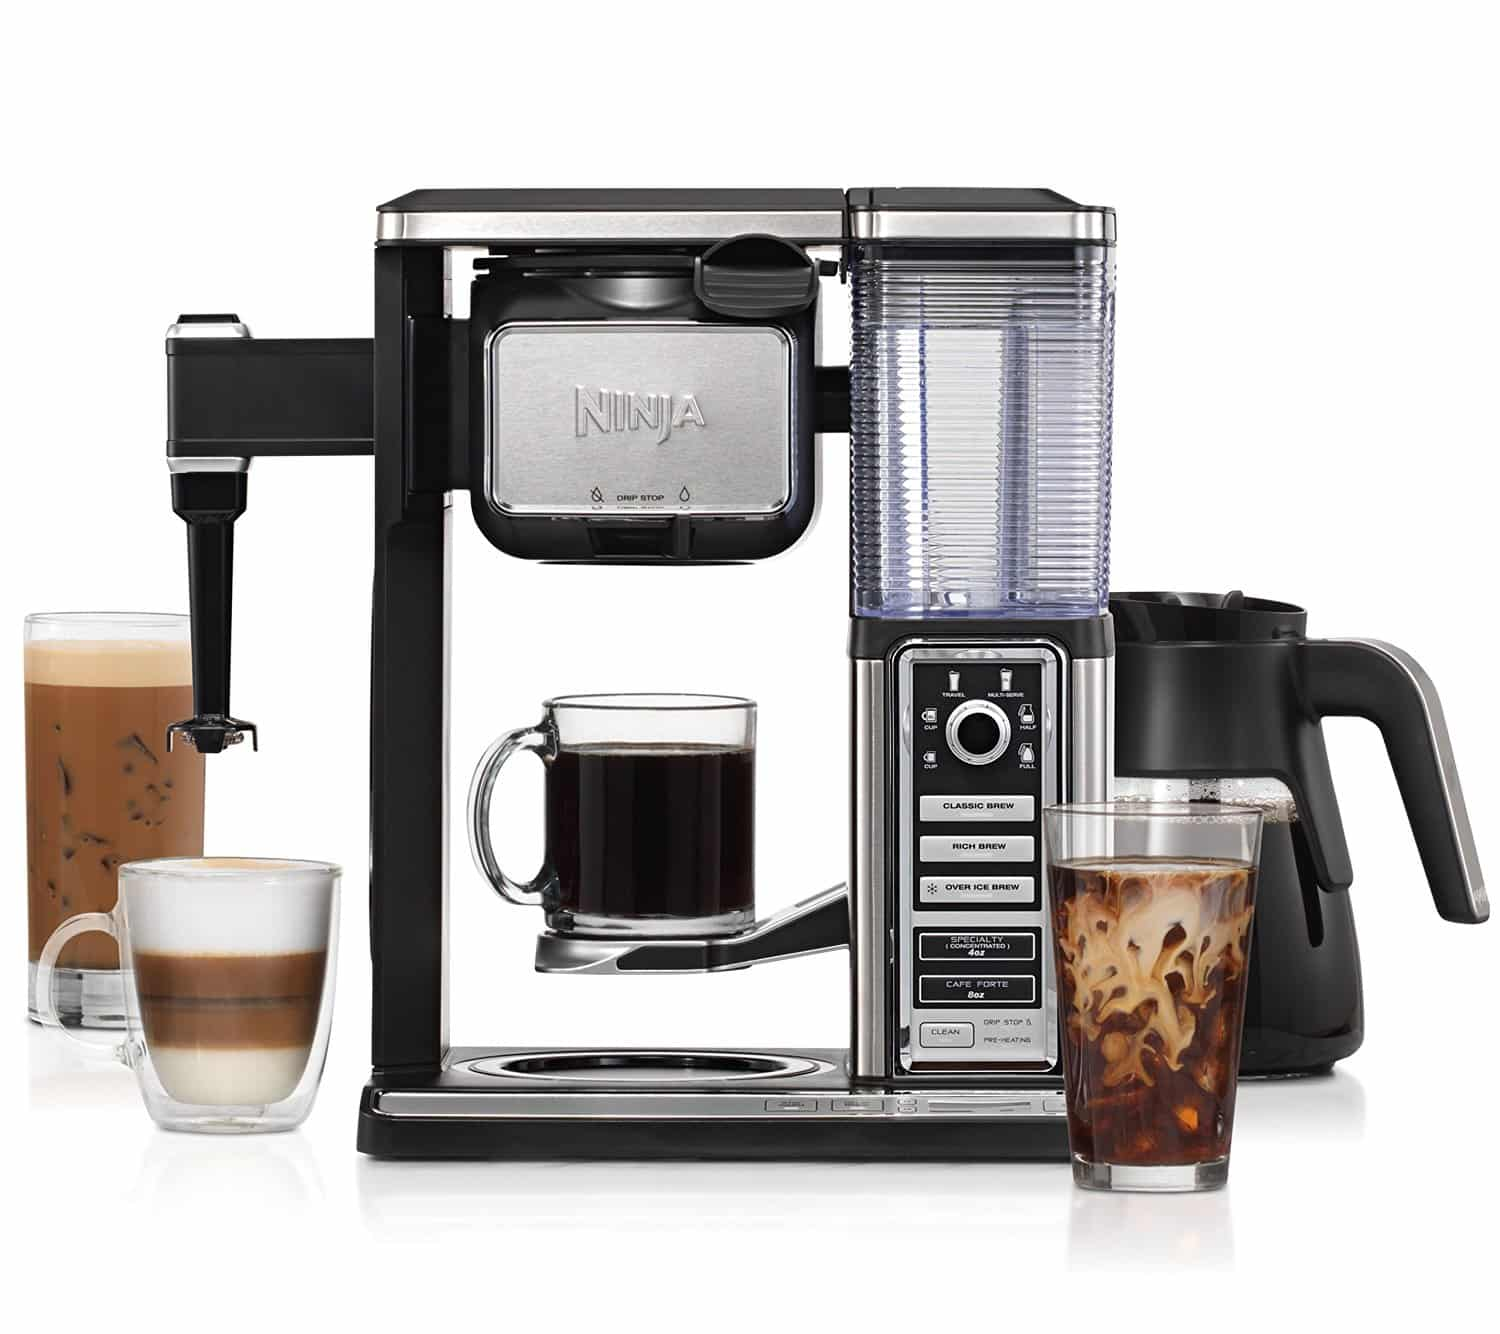 Top 10 Best Drip Coffee Makers In 2018